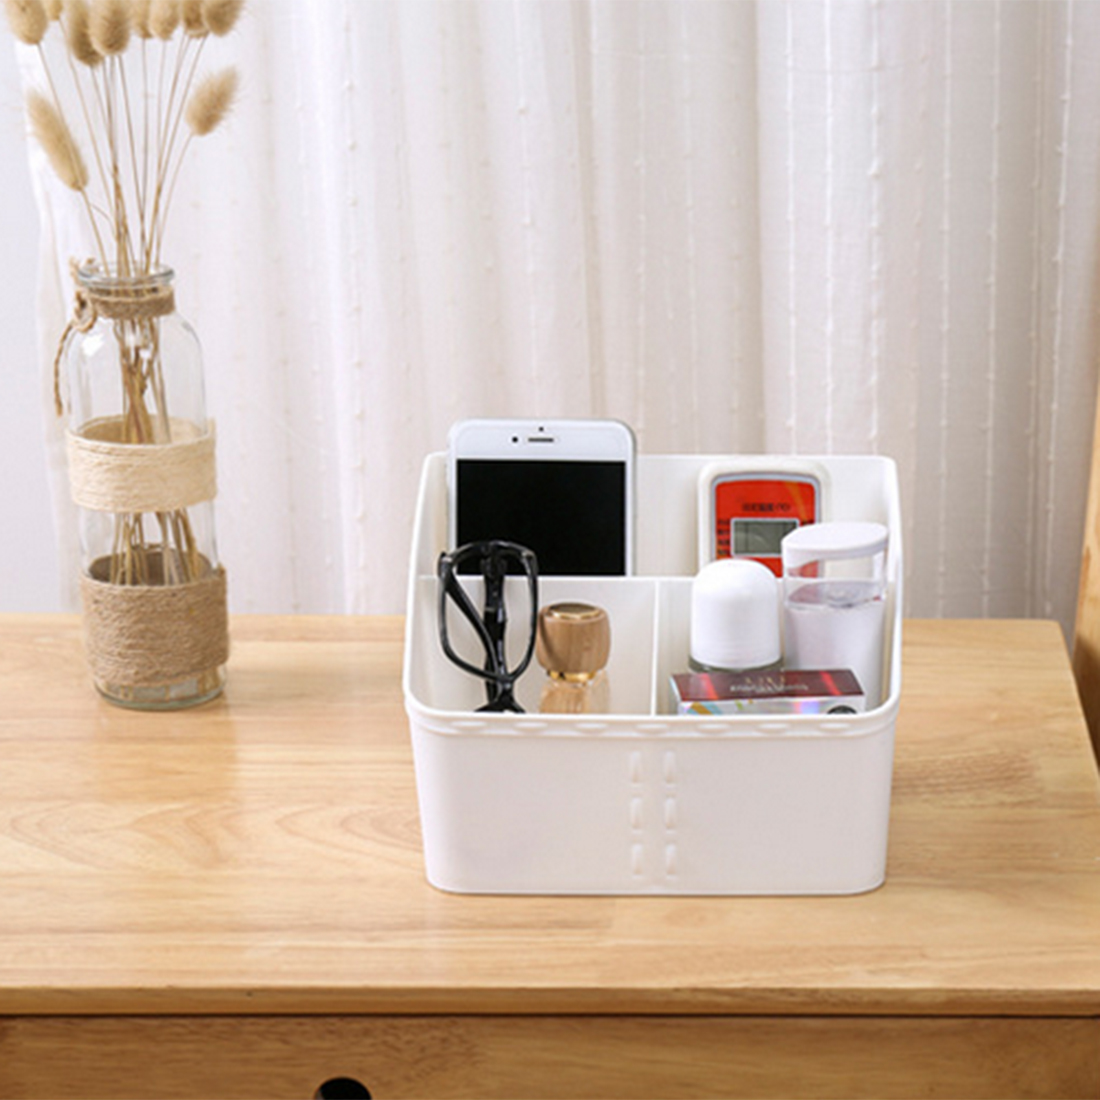 iTECHOR Square Shape Desk Top Storage Box Household Plastic Organizer Box for Home Office Storage Boxes Bins